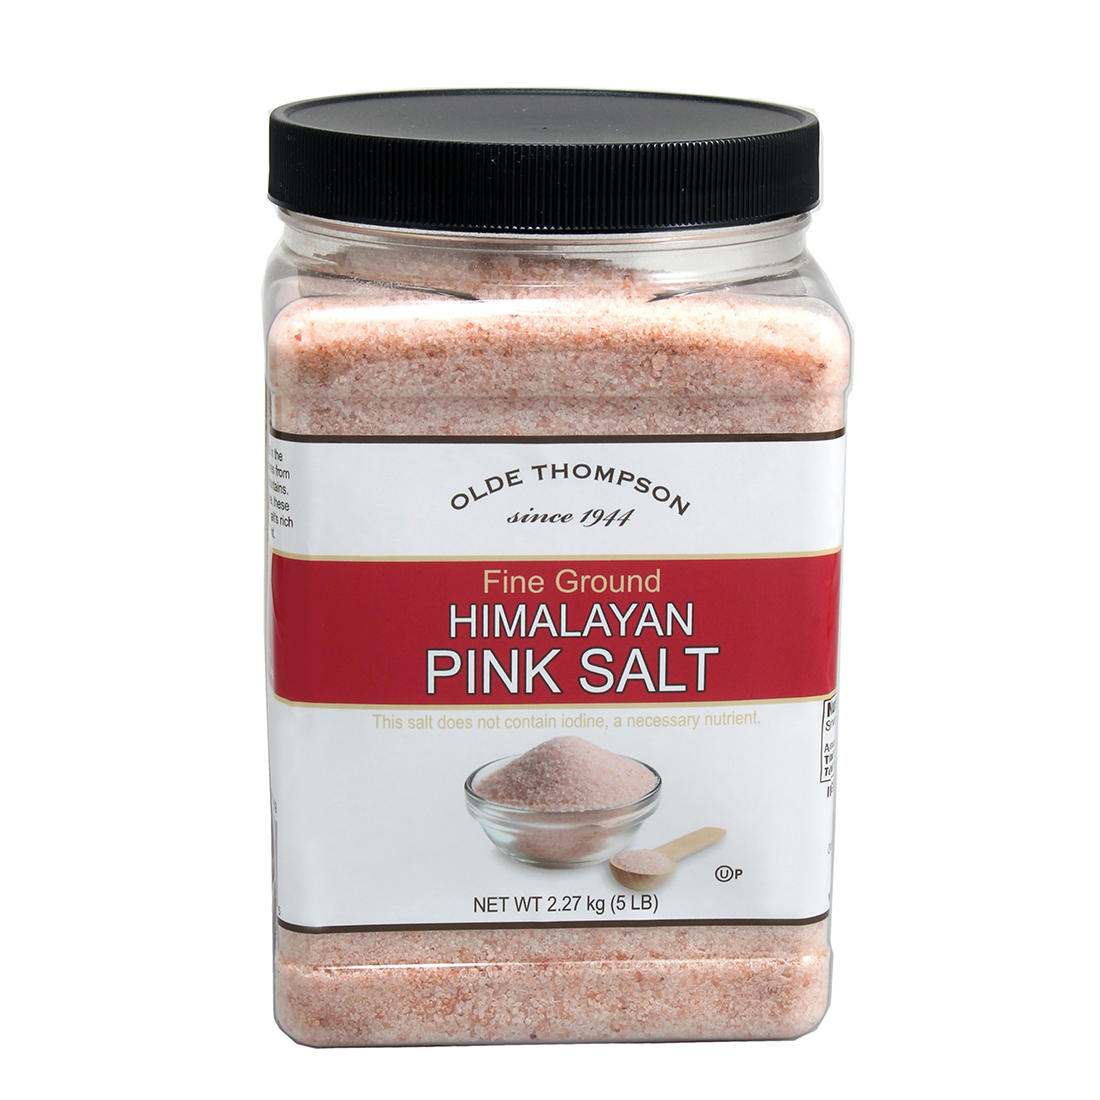 Olde Thompson Fine Ground Himalayan Pink Salt, 5 lbs